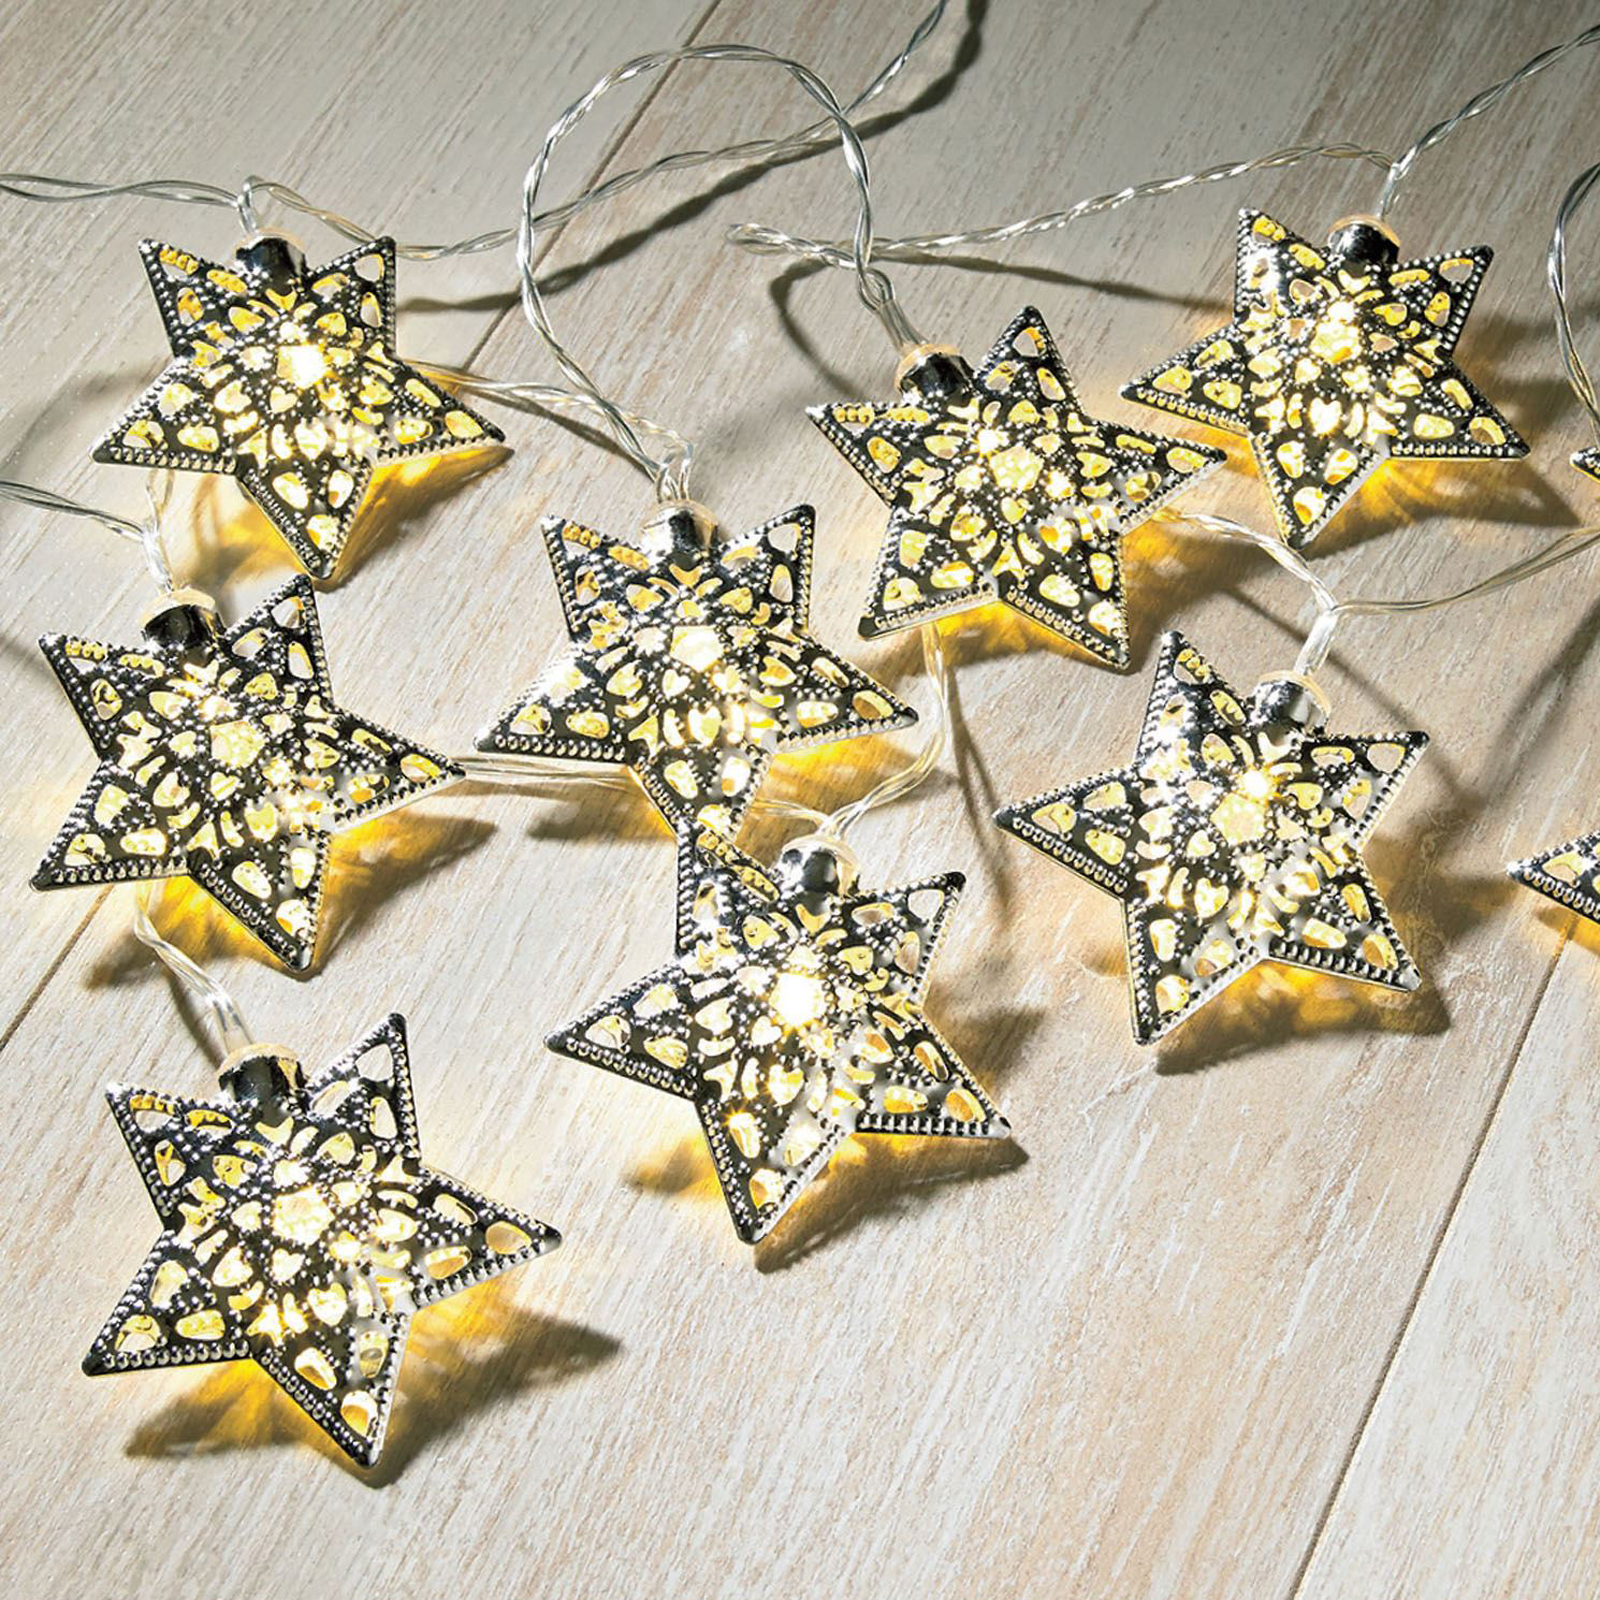 12 Solar Star String Lights